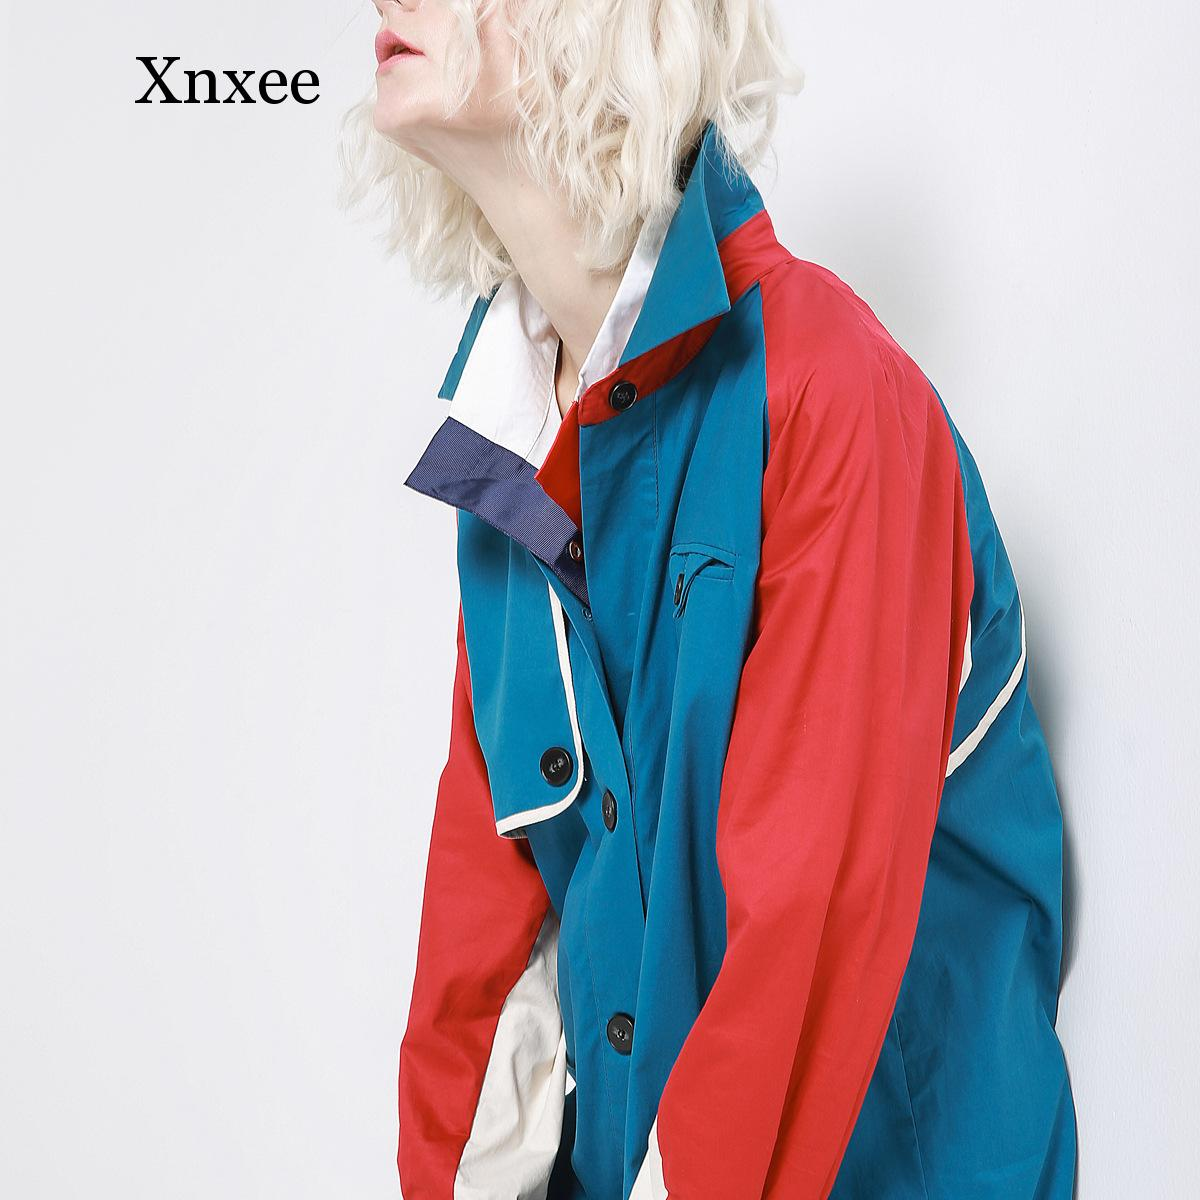 Xnxee Women   Trench   Coat Patchwork Cotton Windbreakers Long Sleeve Single Breasted Long Coat Loose Female Overcoat Autumn 2019